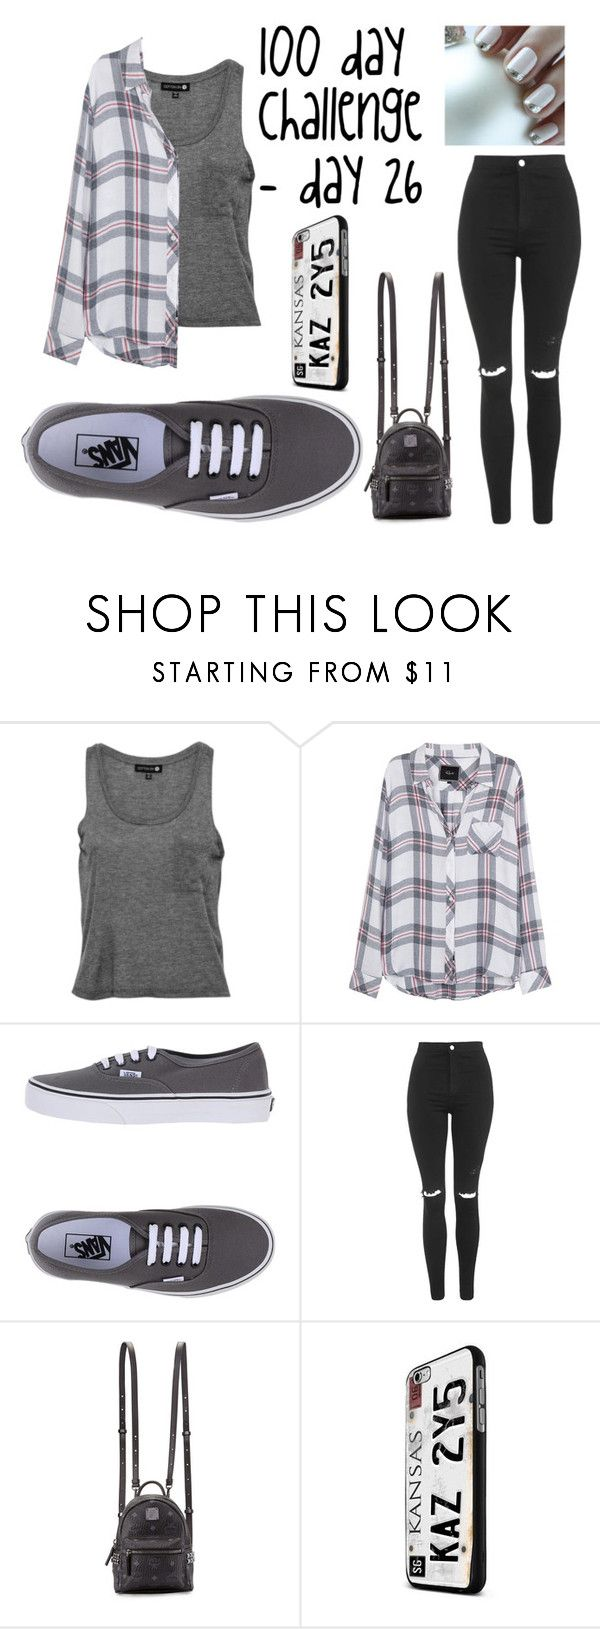 """""""100 day challenge - Shawn Mendes concert"""" by zalaneacoles ❤ liked on Polyvore featuring Rails, Vans, Topshop and MCM"""